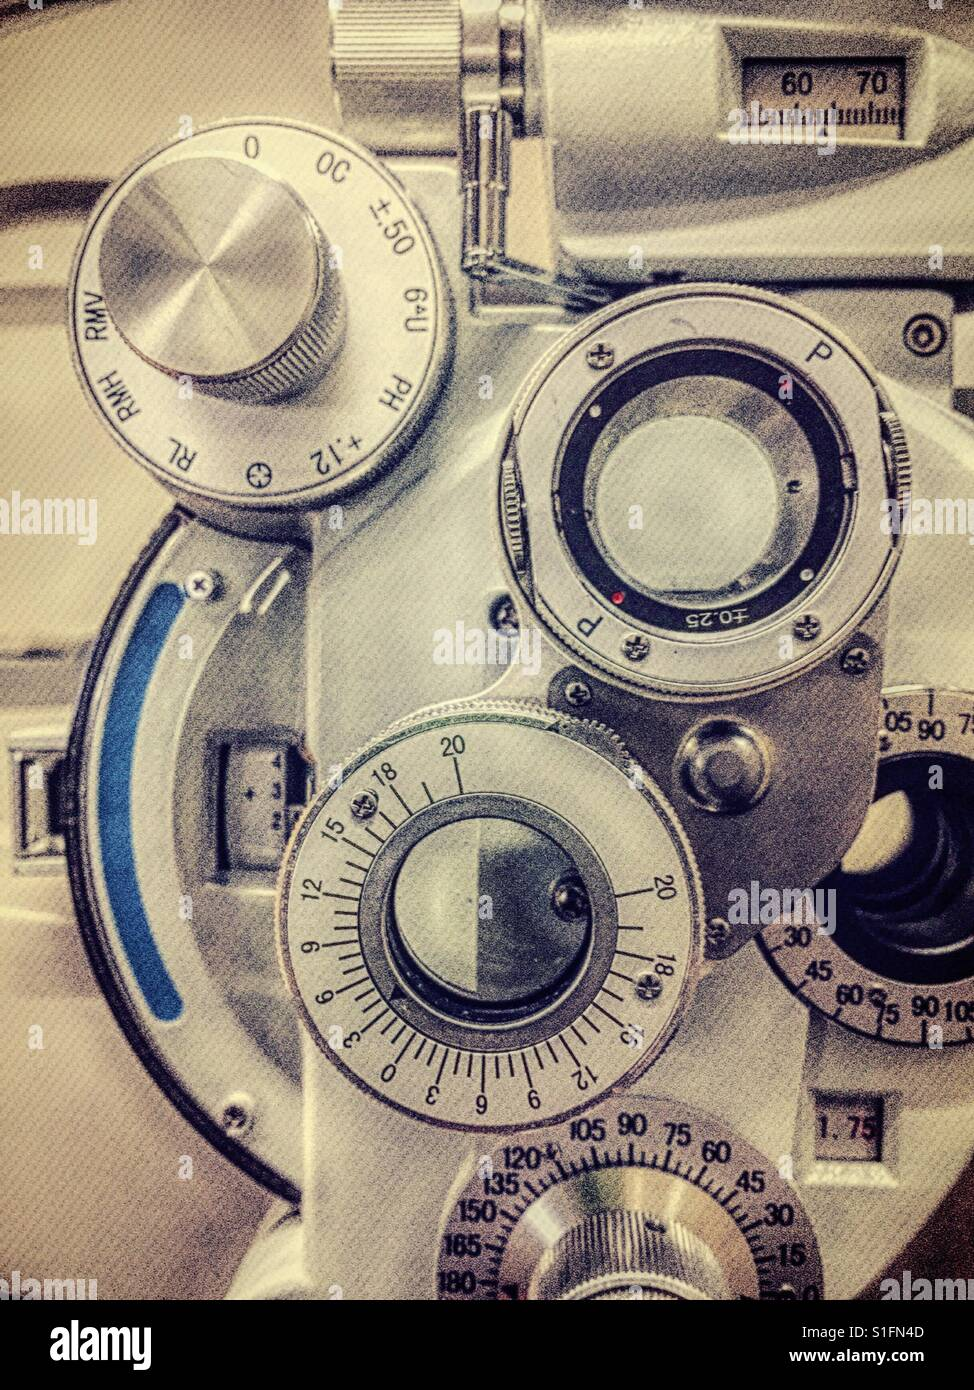 Ophthalmology Office, close-up of phoropter refraction machine, USA - Stock Image